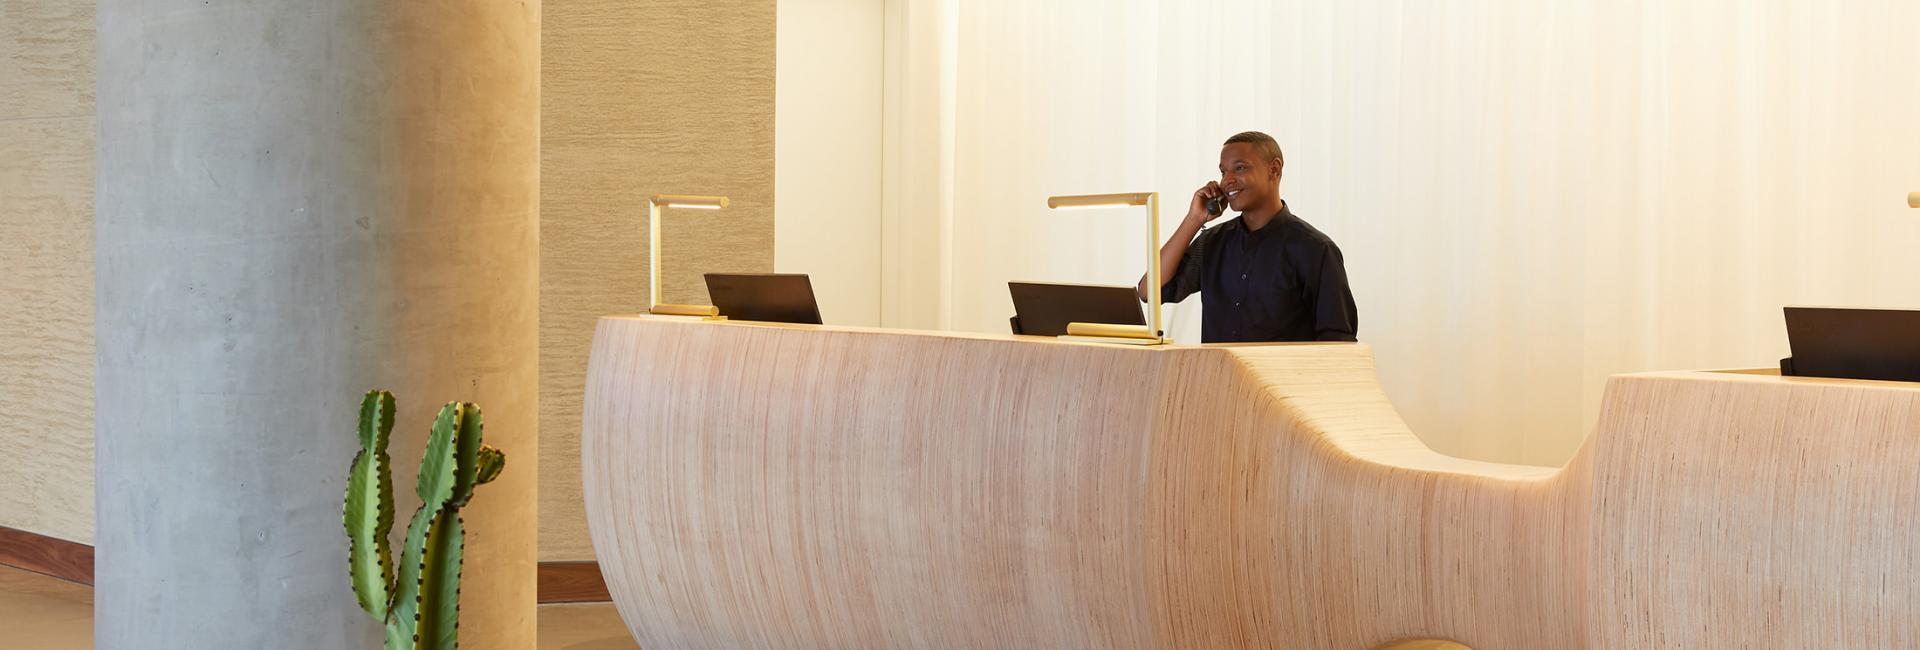 A man talking on the phone at a hotel front desk